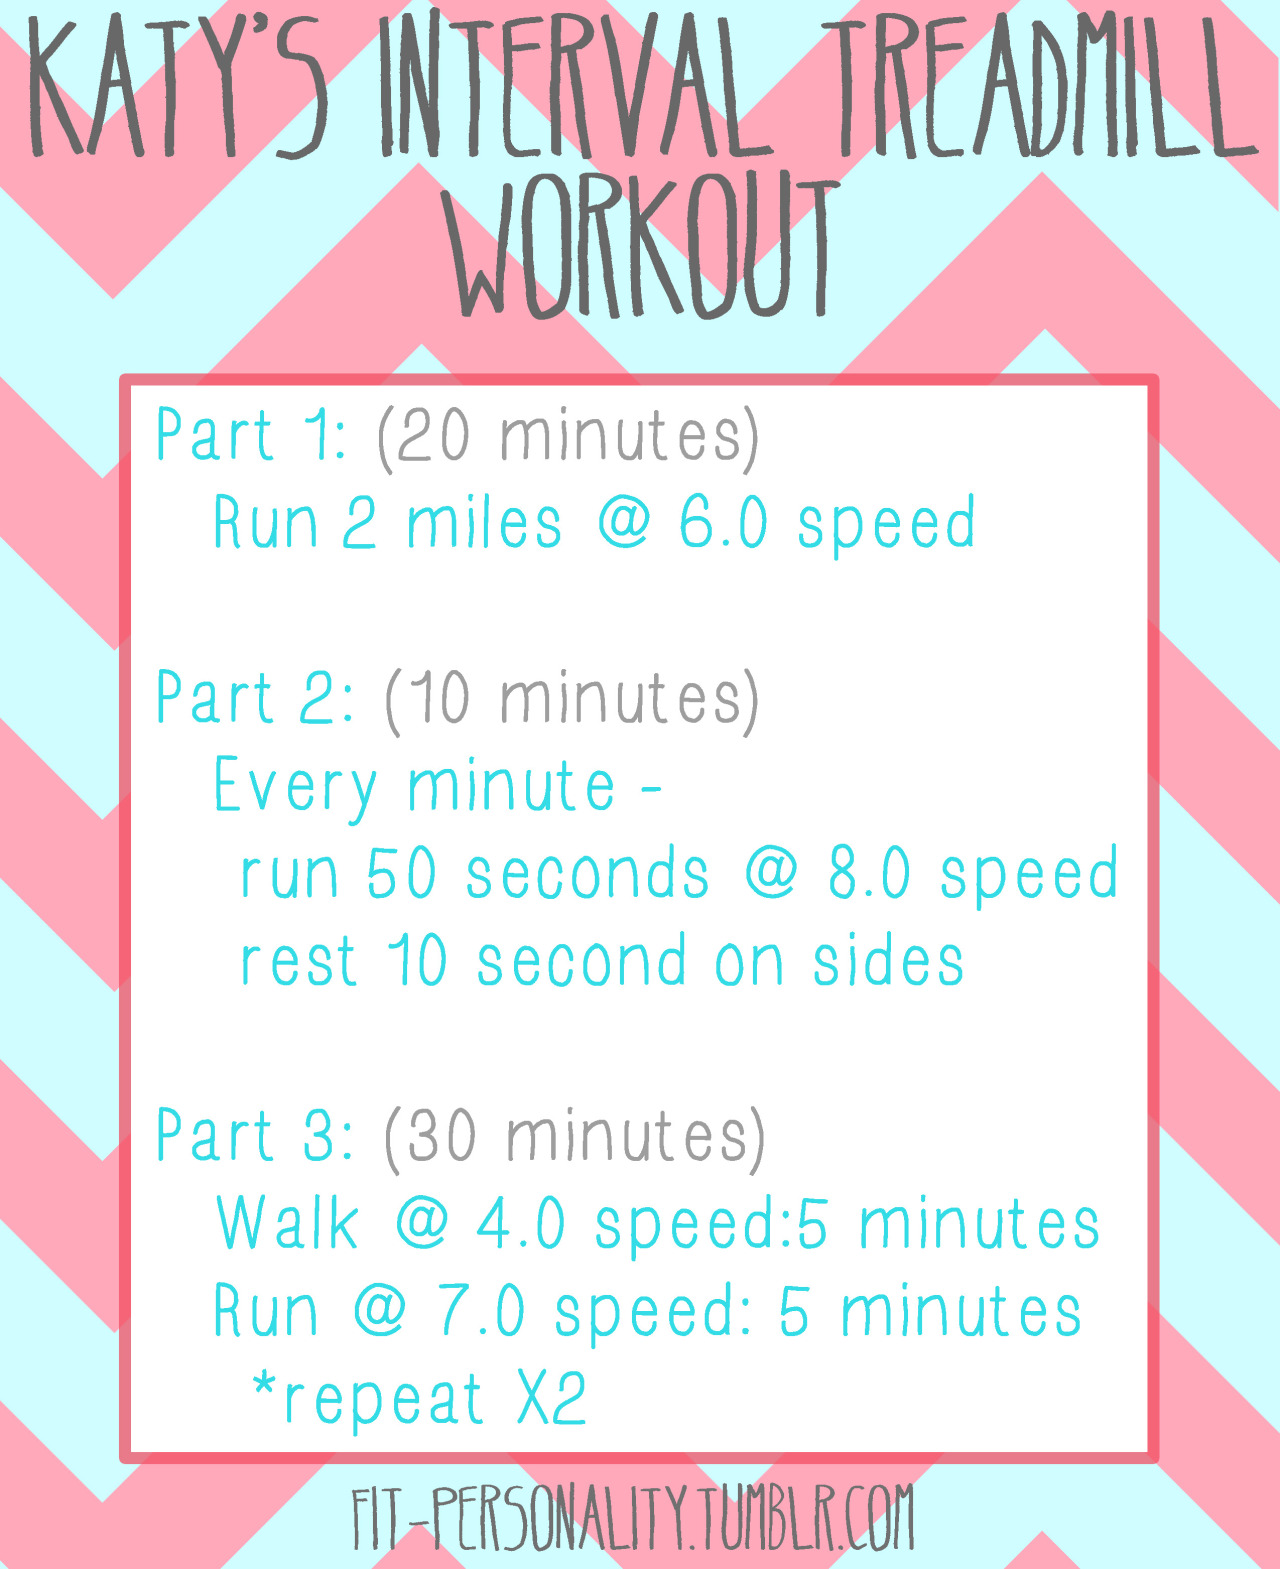 fit-personality:  My absolute favorite treadmill workout I did 2-3 times a week during the summer! I was drenched in sweat by the end of this! :)